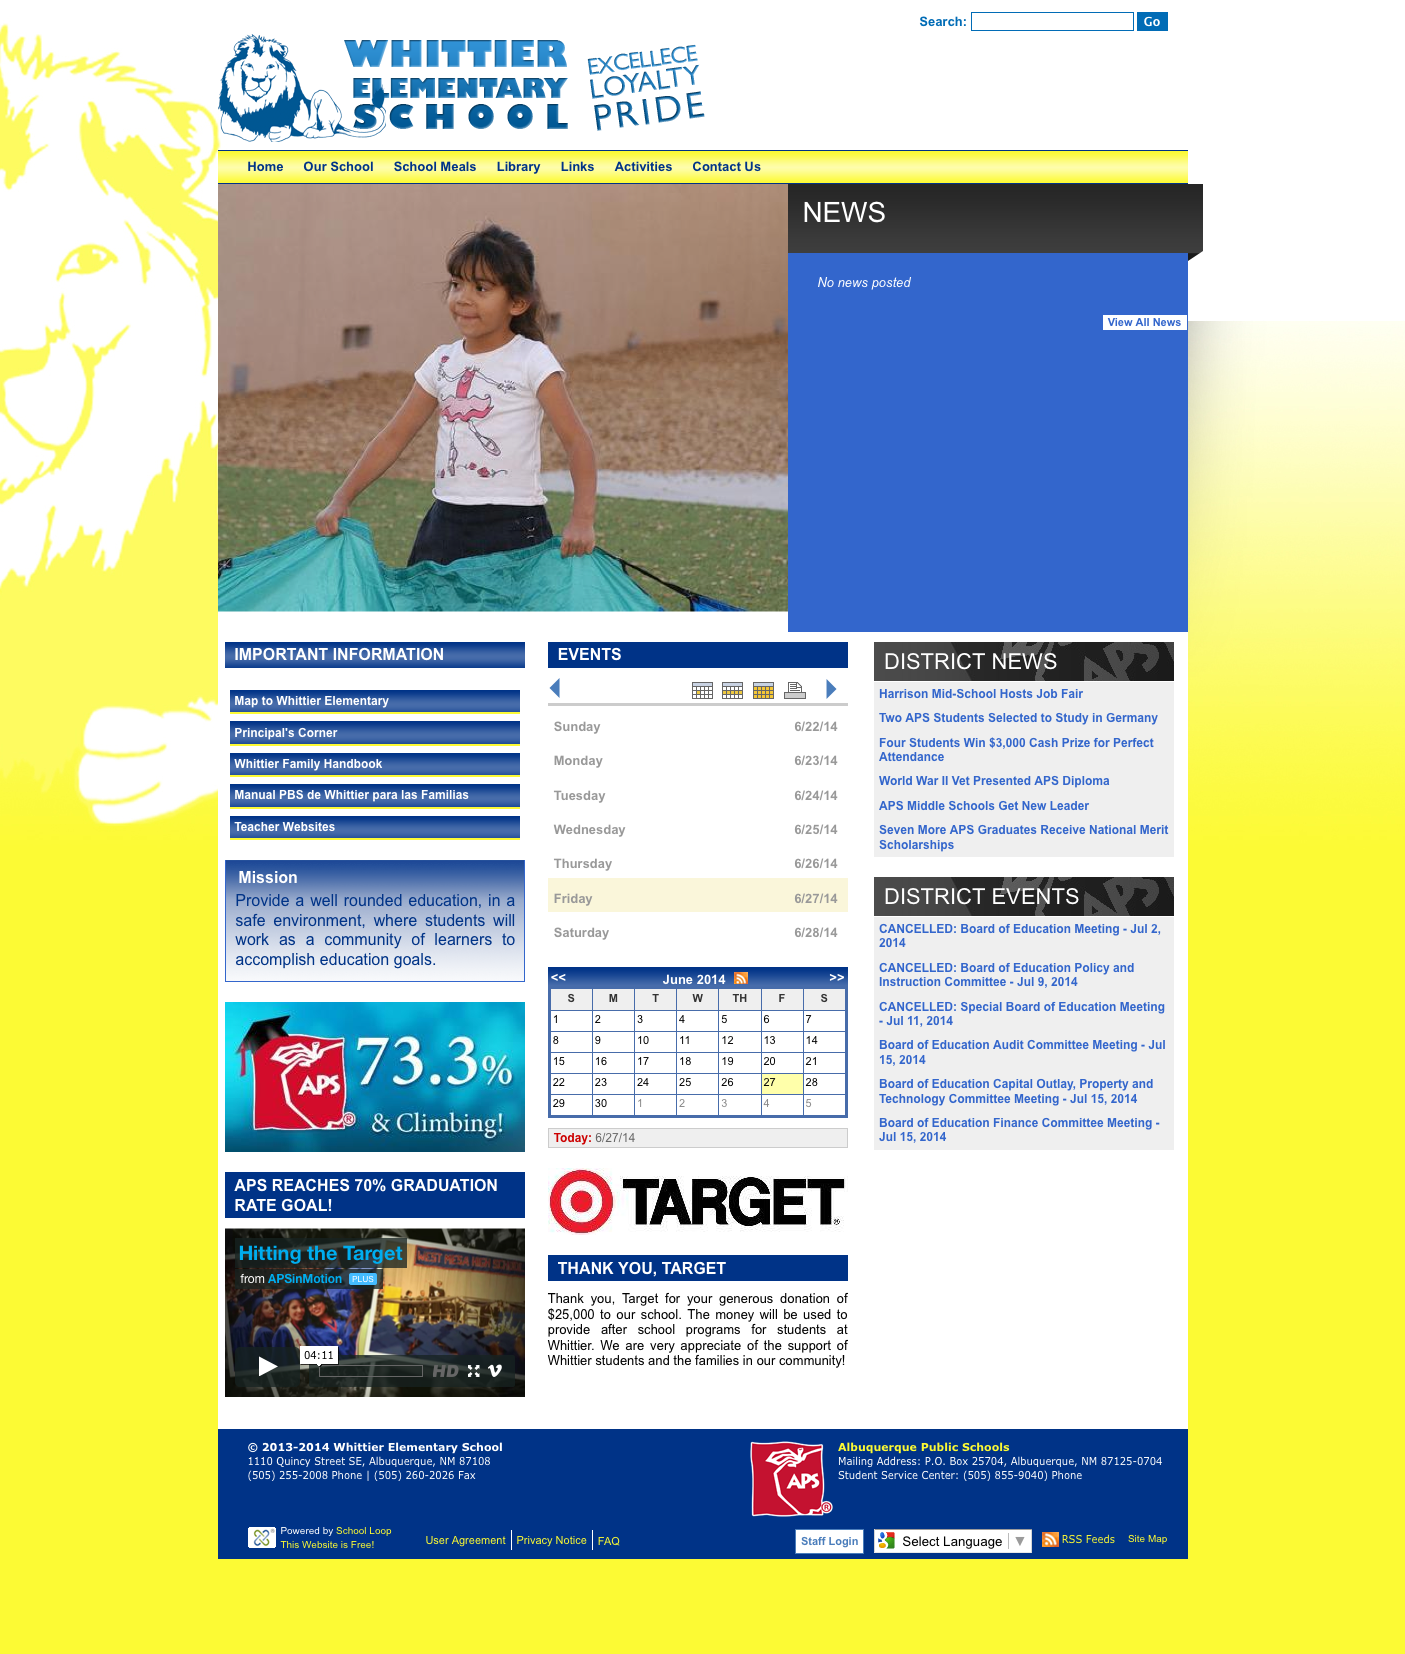 Whittier Website Launched